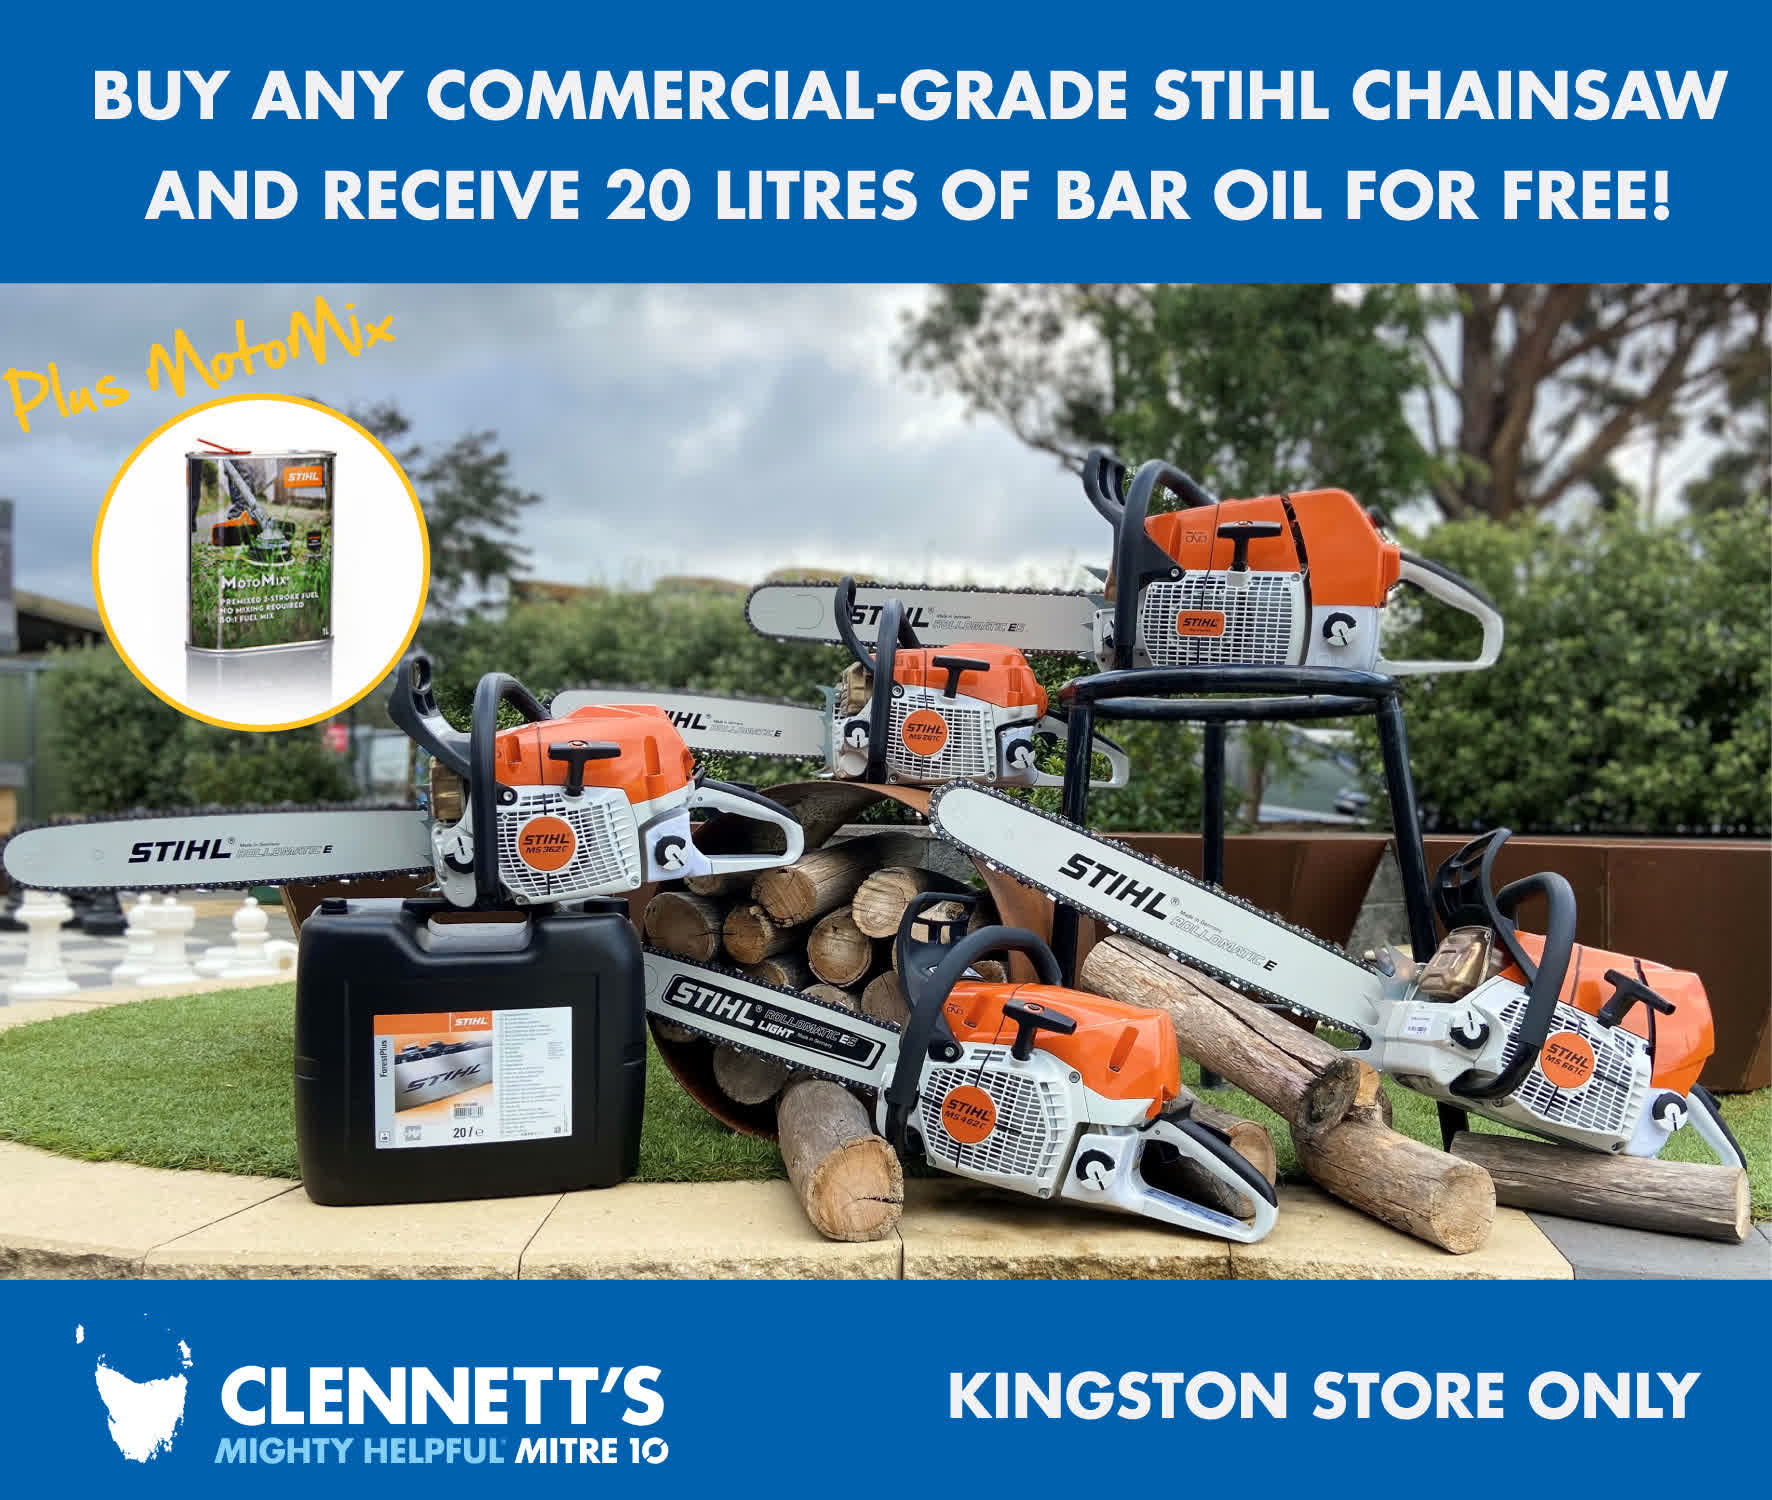 Clennetts Mitre 10 Exclusive STIHL offer